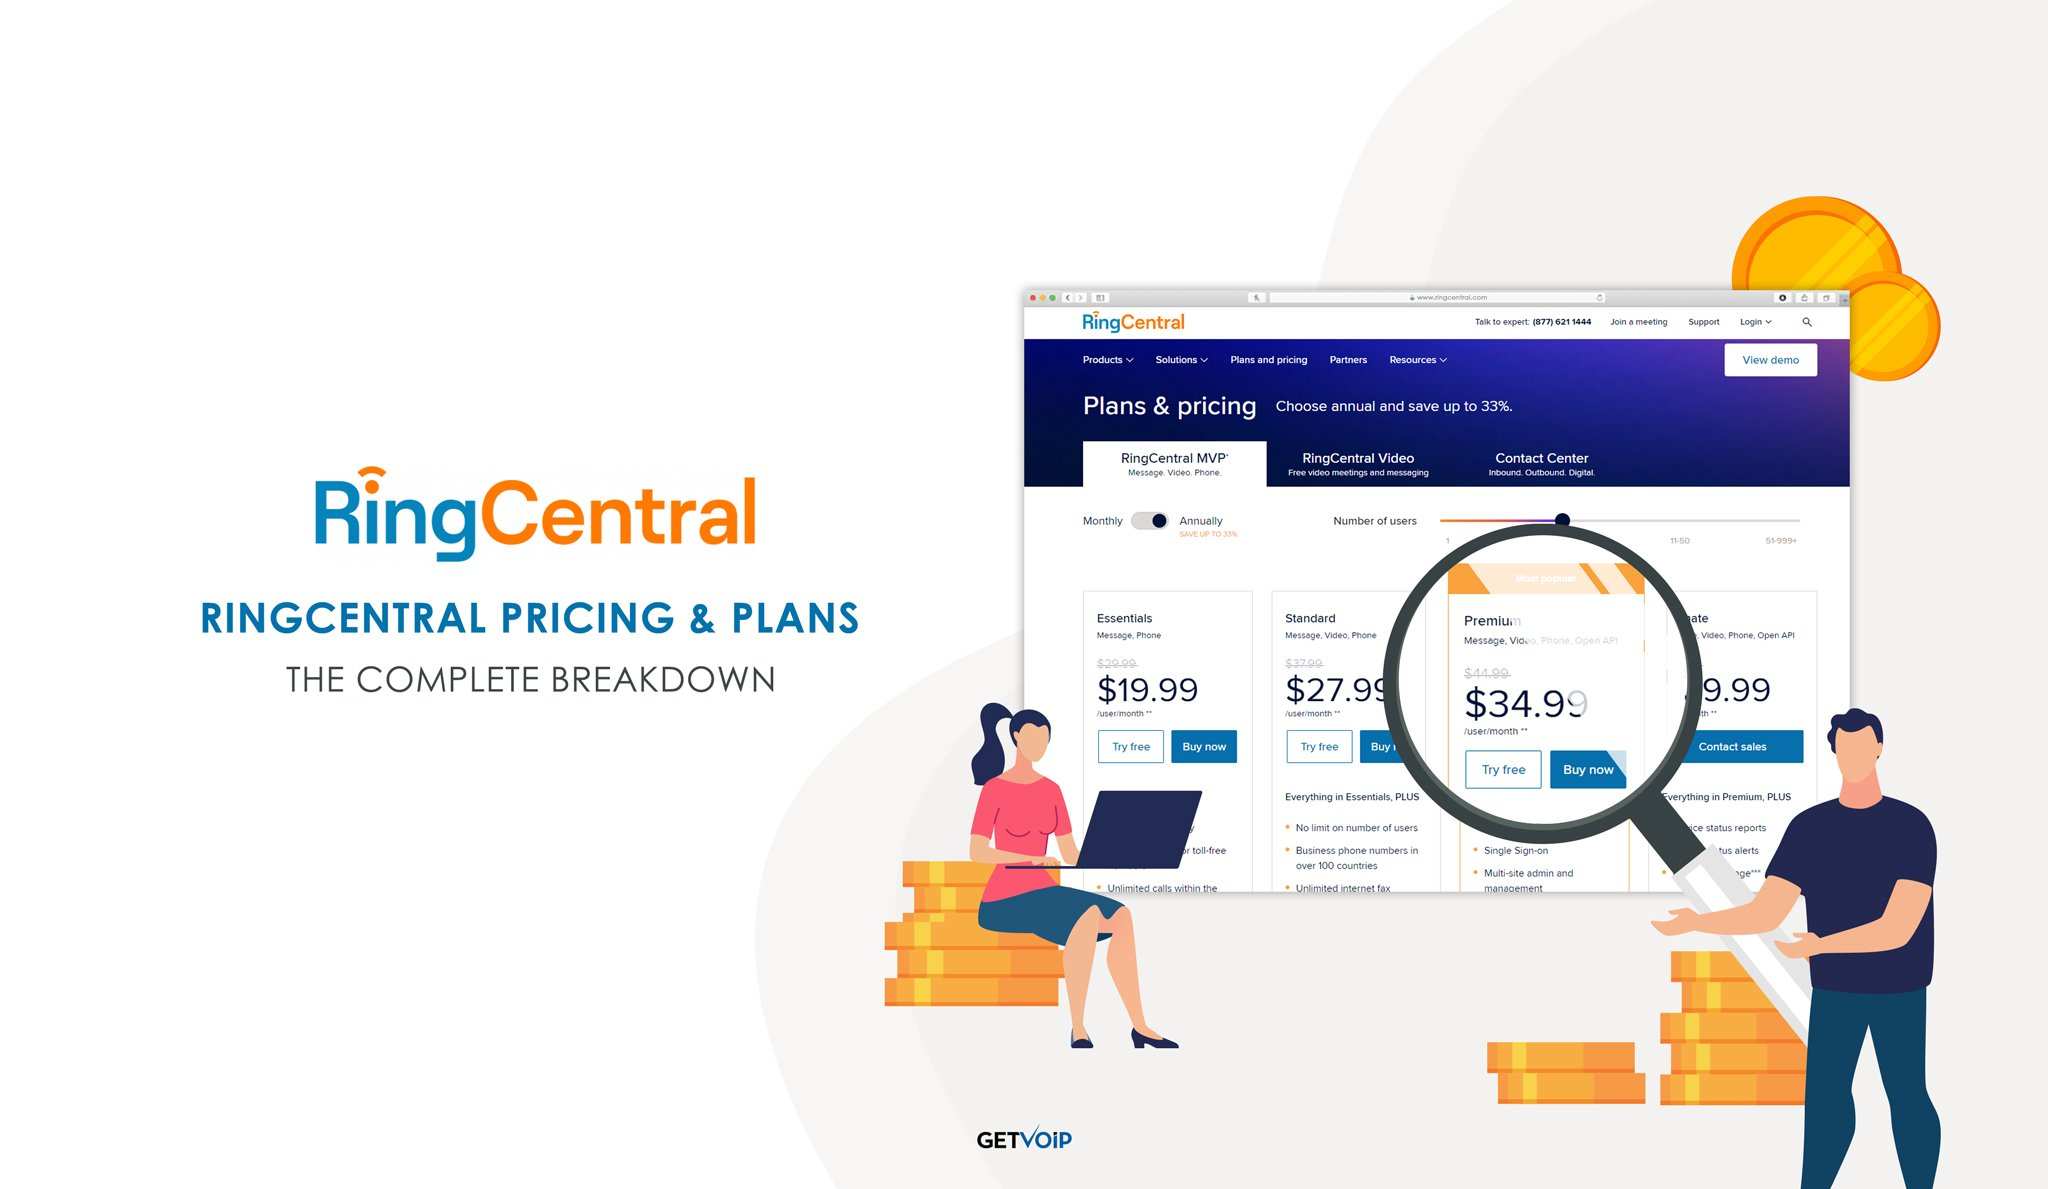 RingCentral Pricing & Plans in 2021: The Complete Breakdown